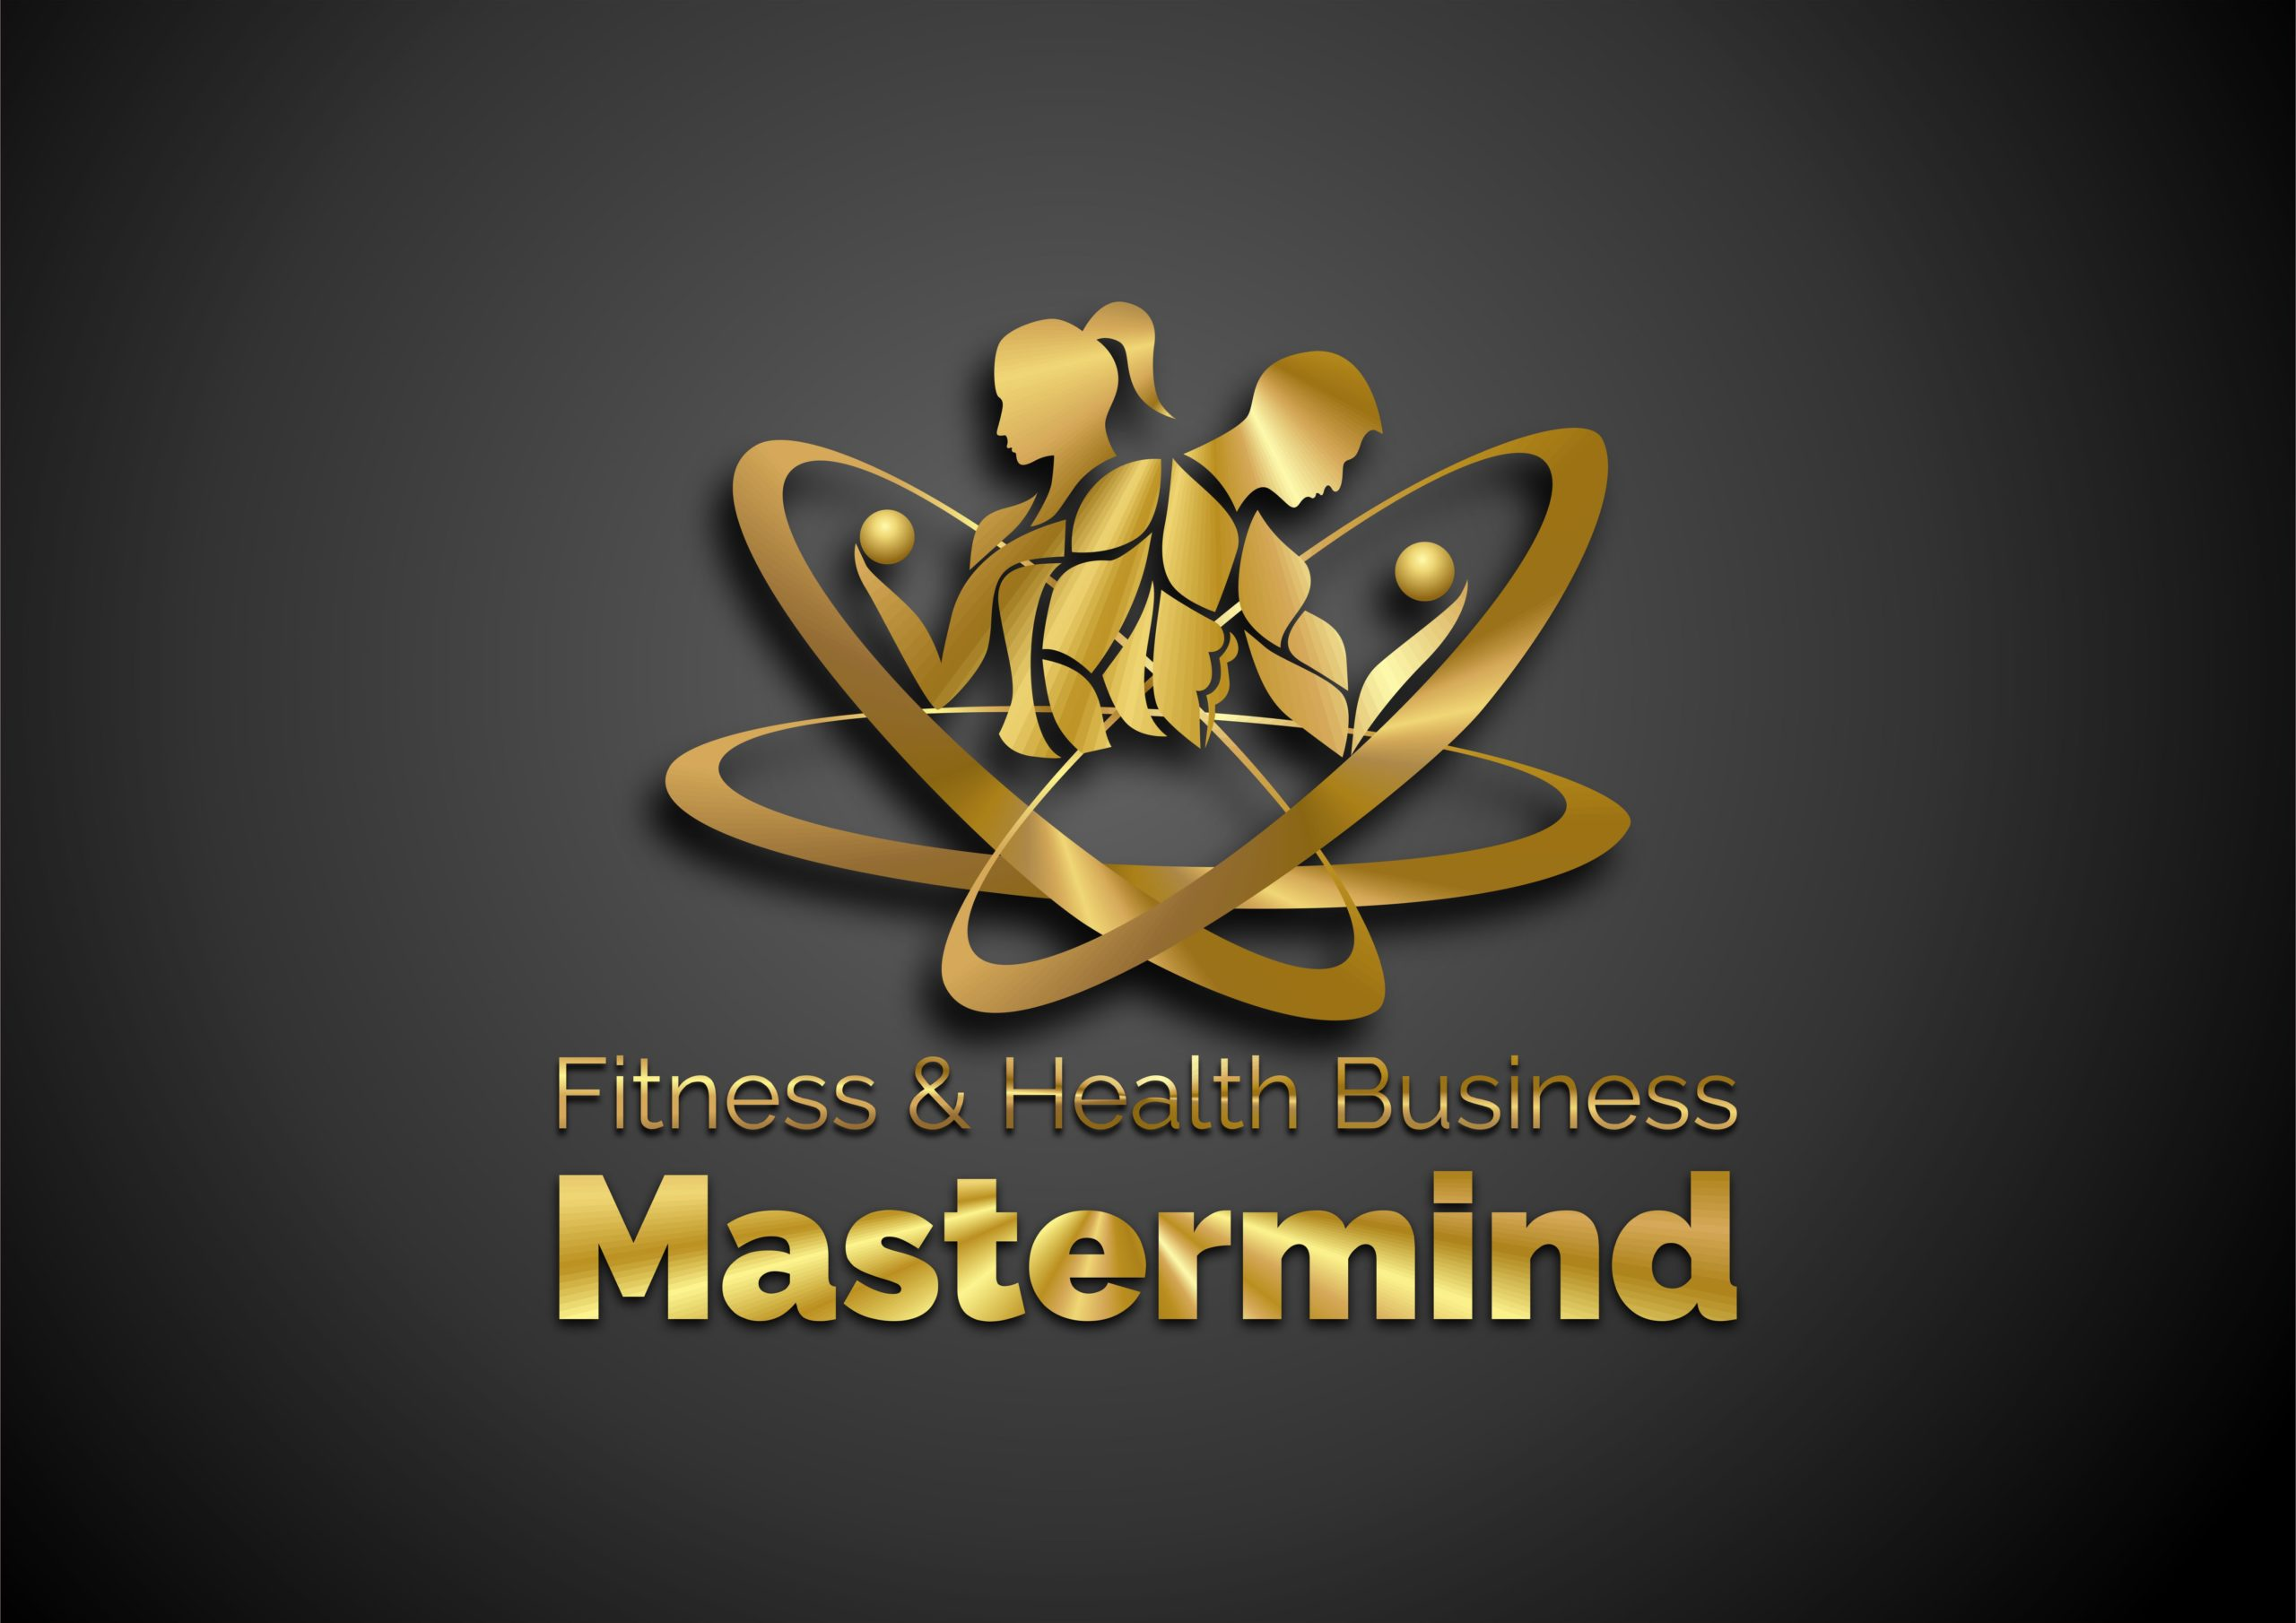 Fitness & Health Business Mastermind